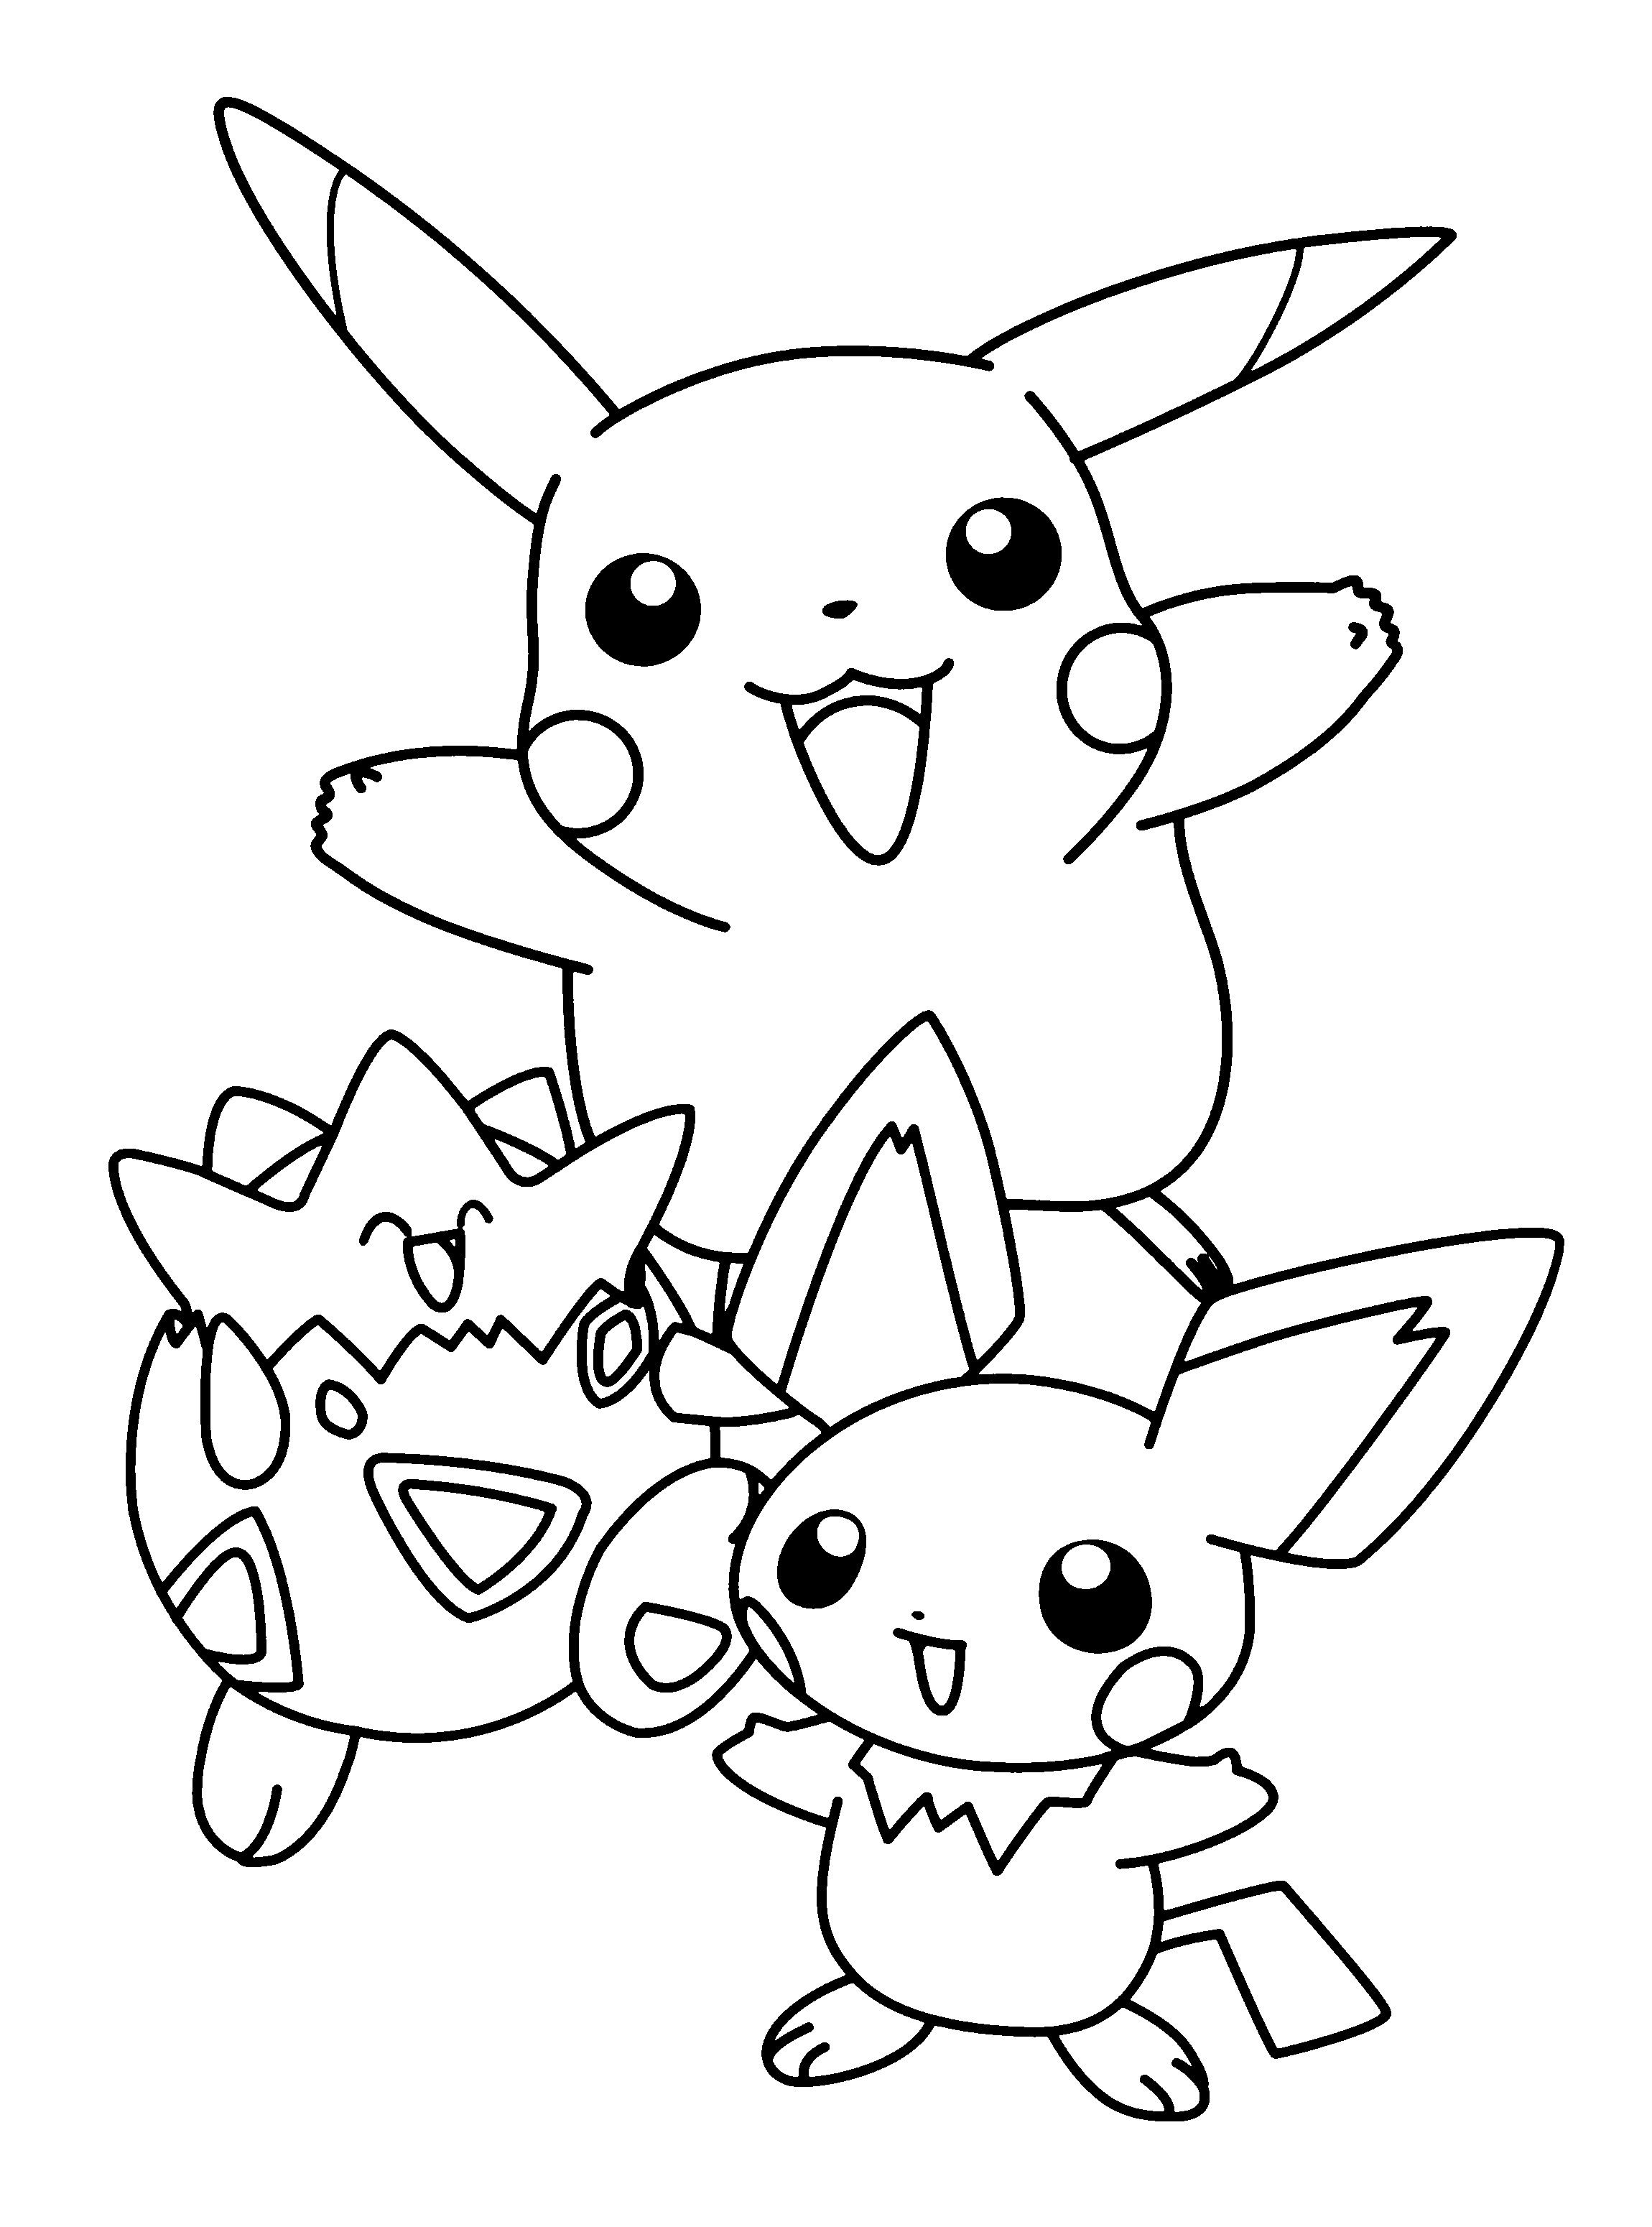 Pokemon Coloring Pages With Names Through The Thousands Of Images On The Internet Concer Pikachu Coloring Page Pokemon Coloring Sheets Cartoon Coloring Pages